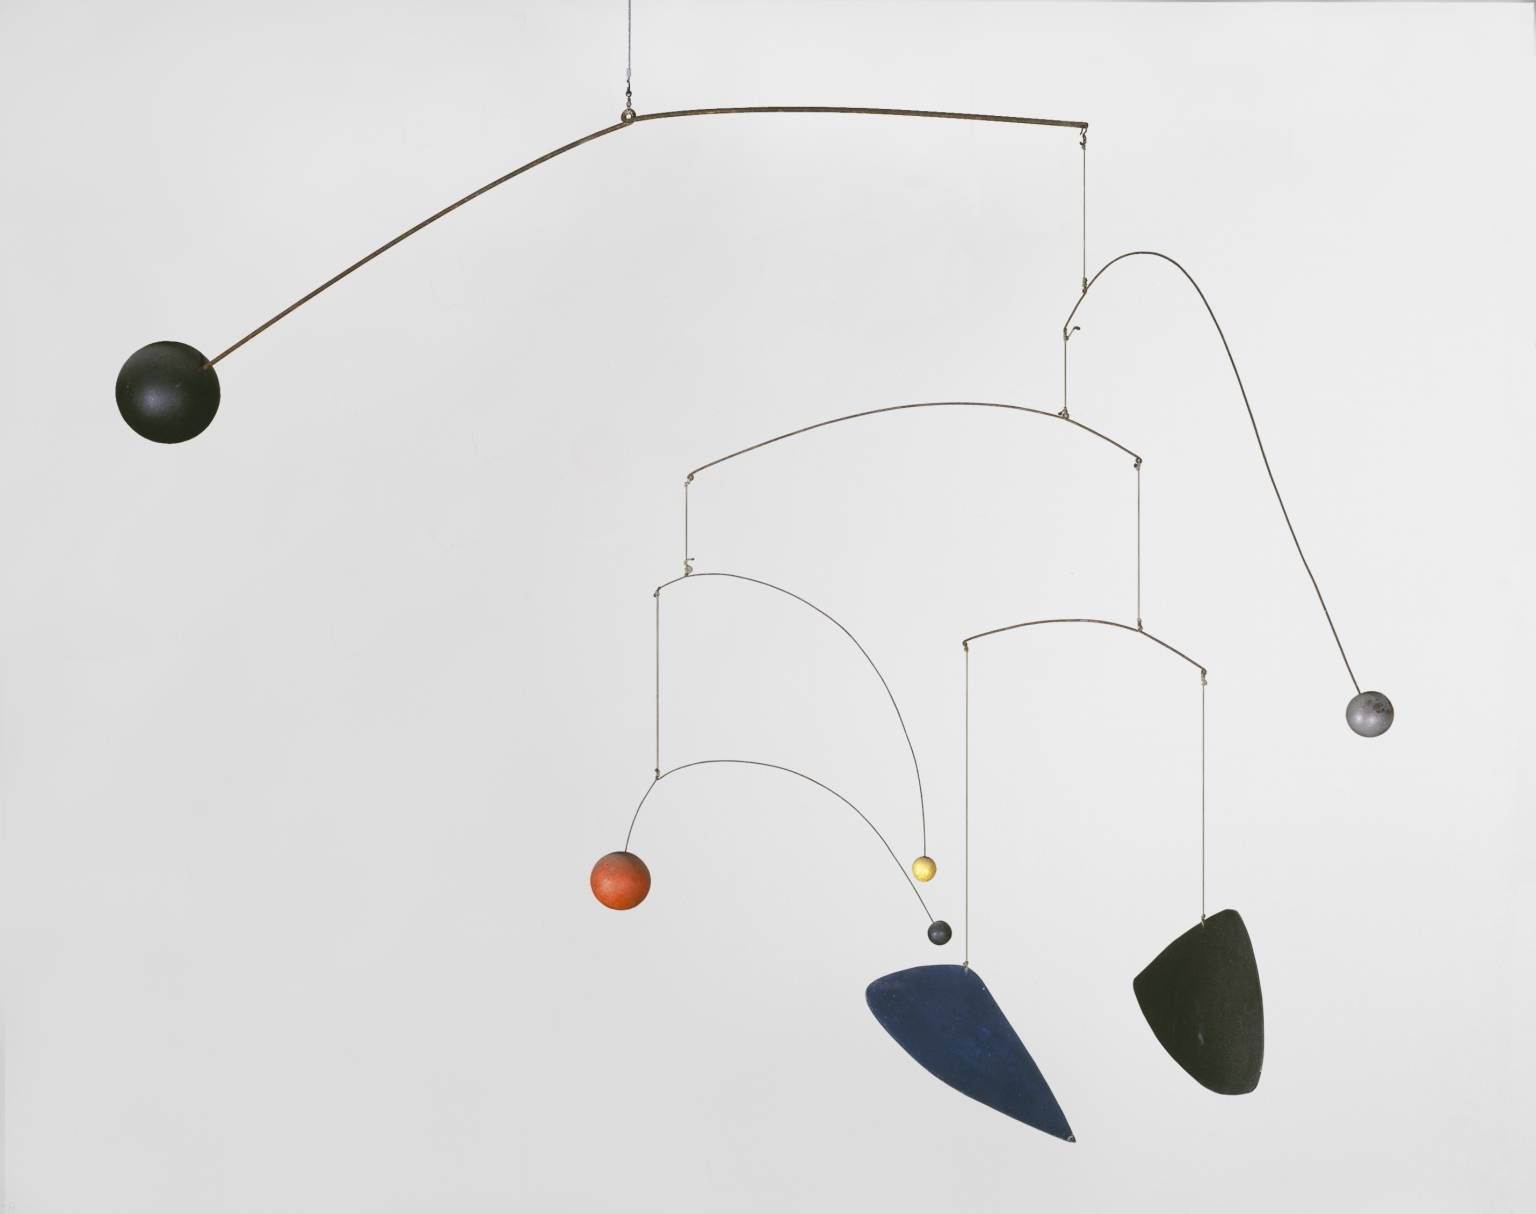 artist alexander calder movement surrealism title mobile 1932 location tate modern london. Black Bedroom Furniture Sets. Home Design Ideas